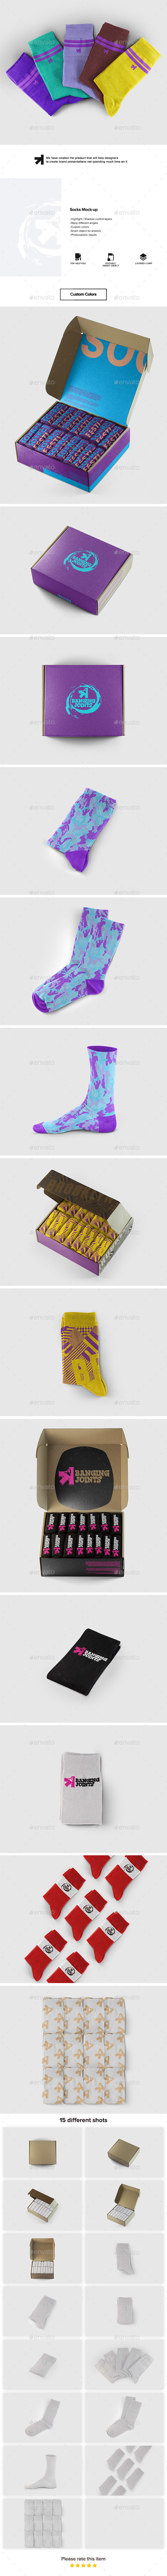 Socks Set Mockup - Miscellaneous Apparel